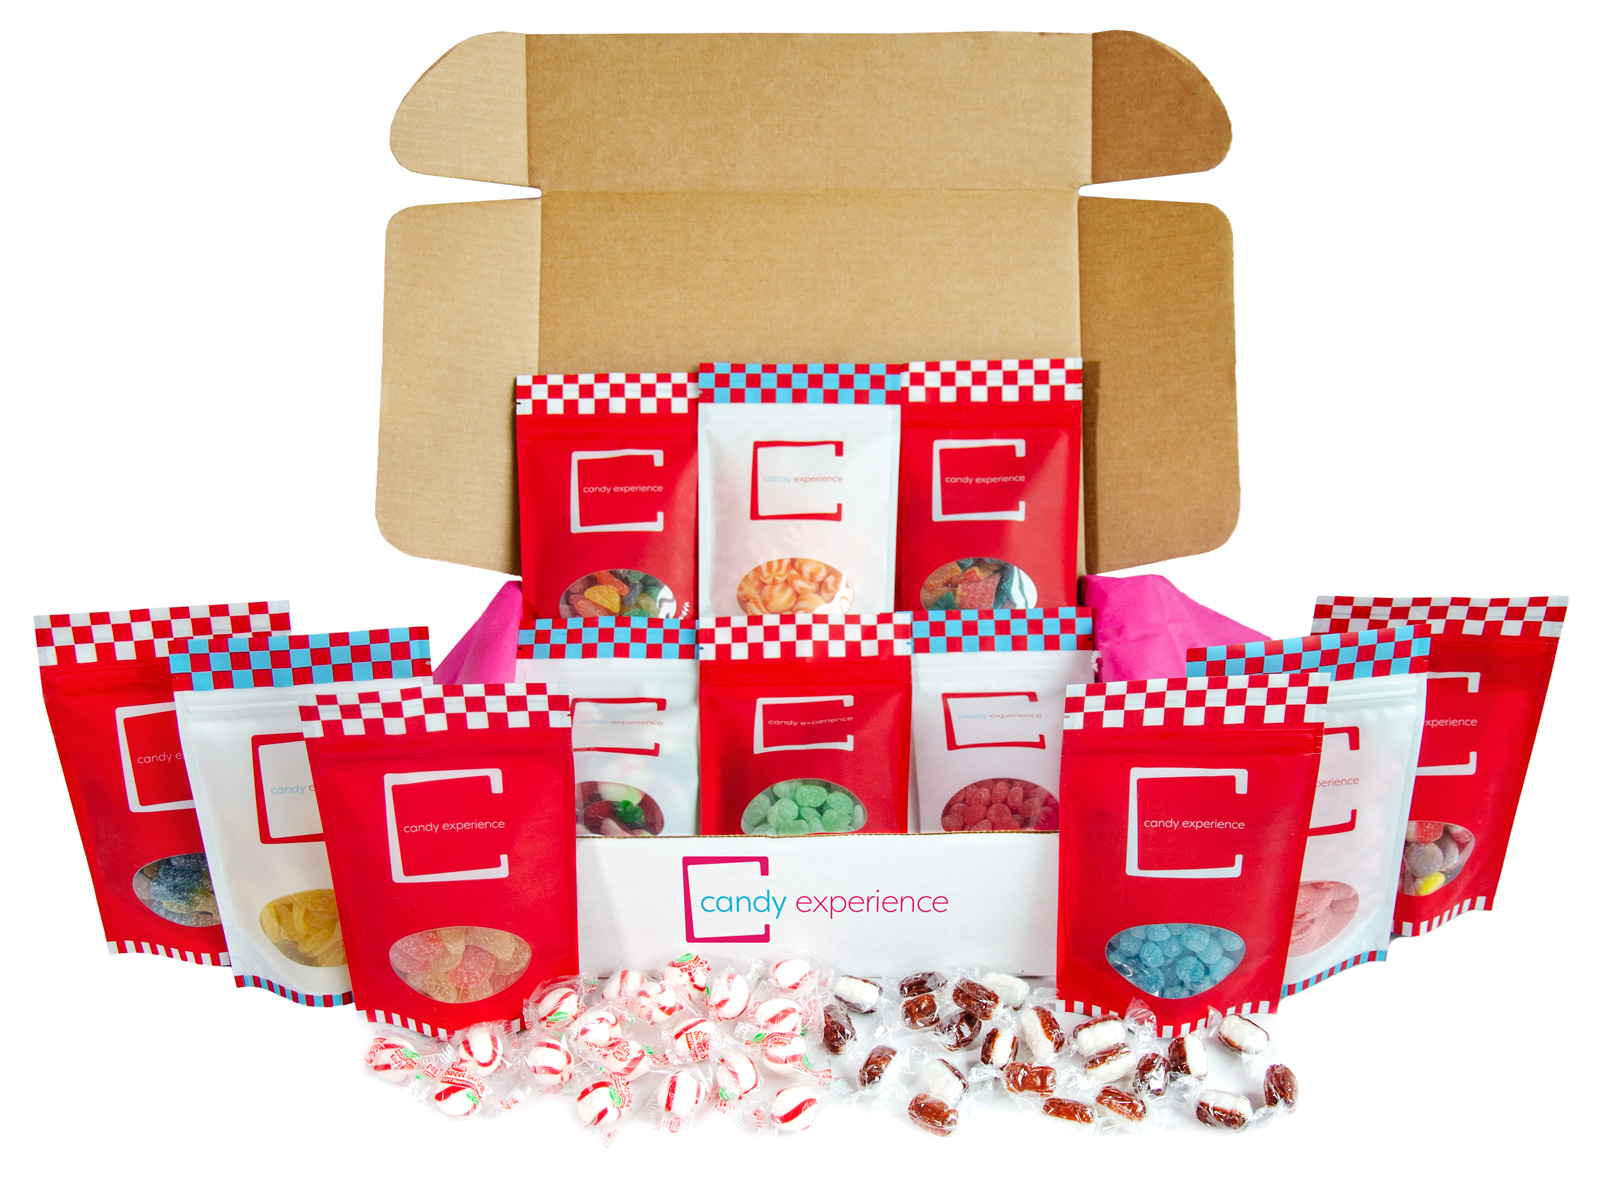 The Experience Candy Box